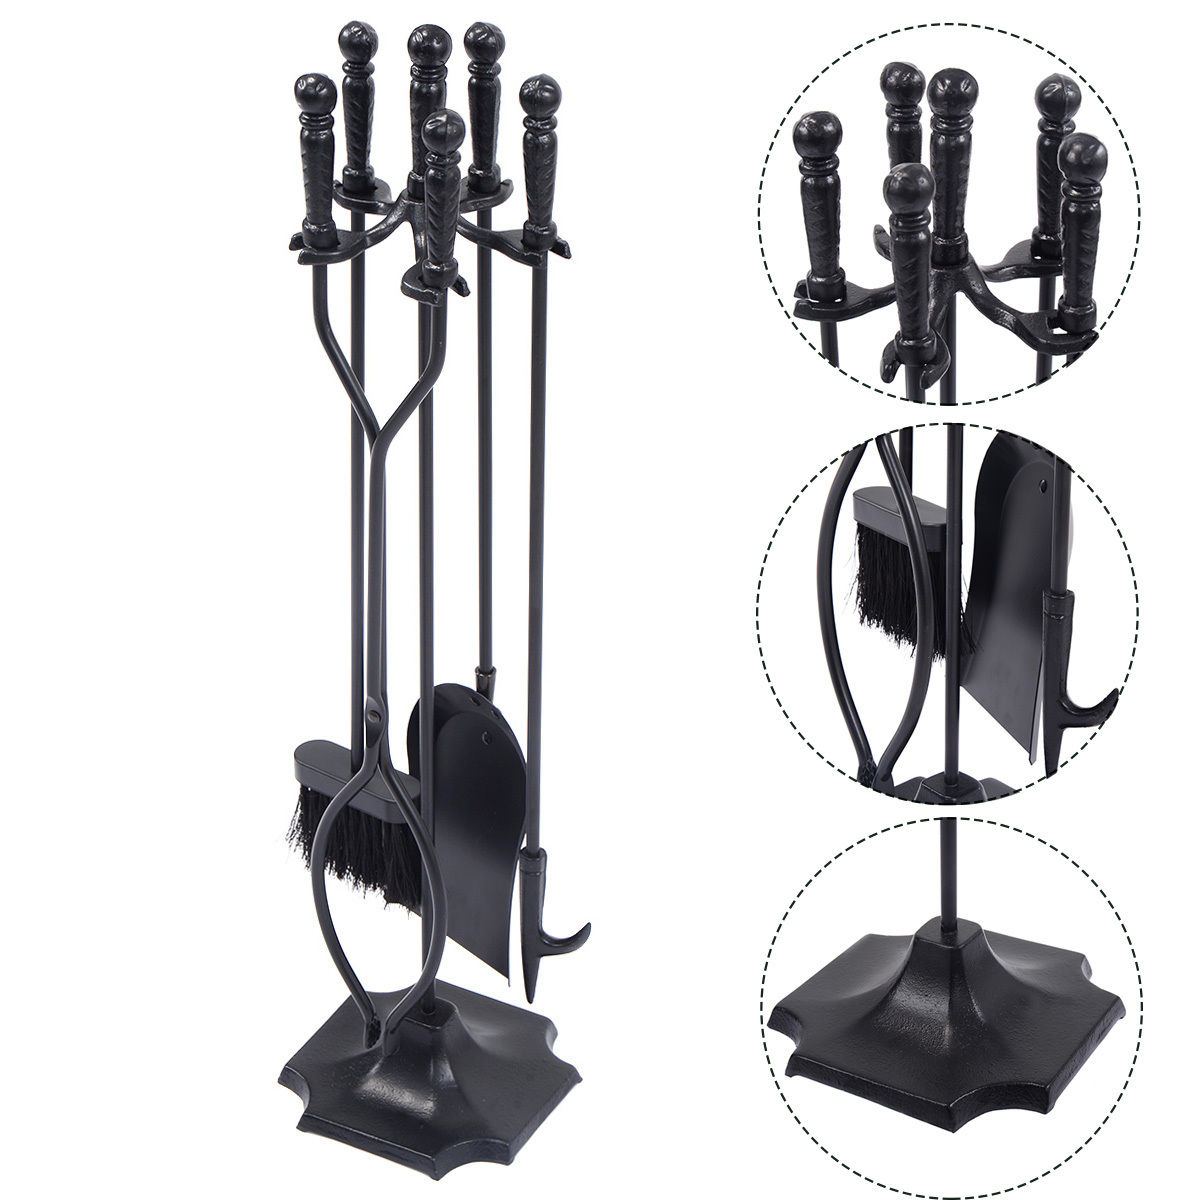 Costway 5 PCS Hearth Tool Fireplace Set Fire Tools Set Black Home 31'' Pedestal Base by Costway